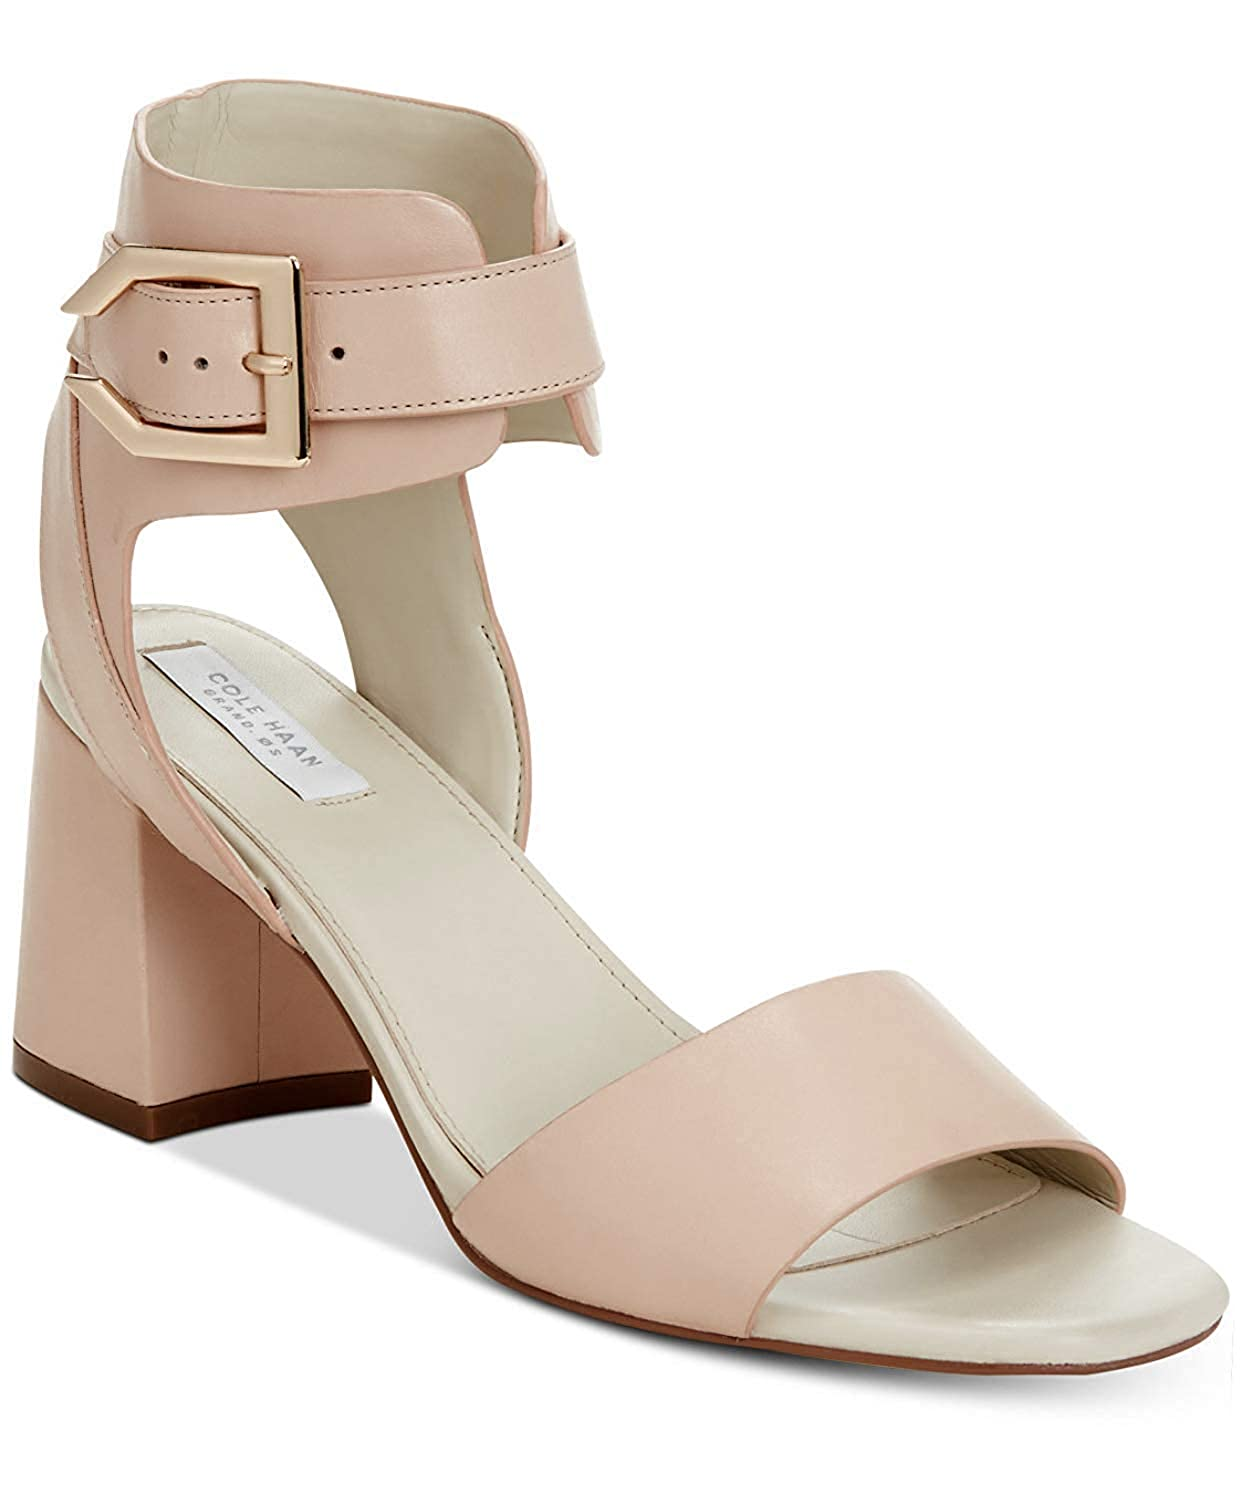 Nude Leather Cole Haan Women's Avani Block-Heel Sandals Nude